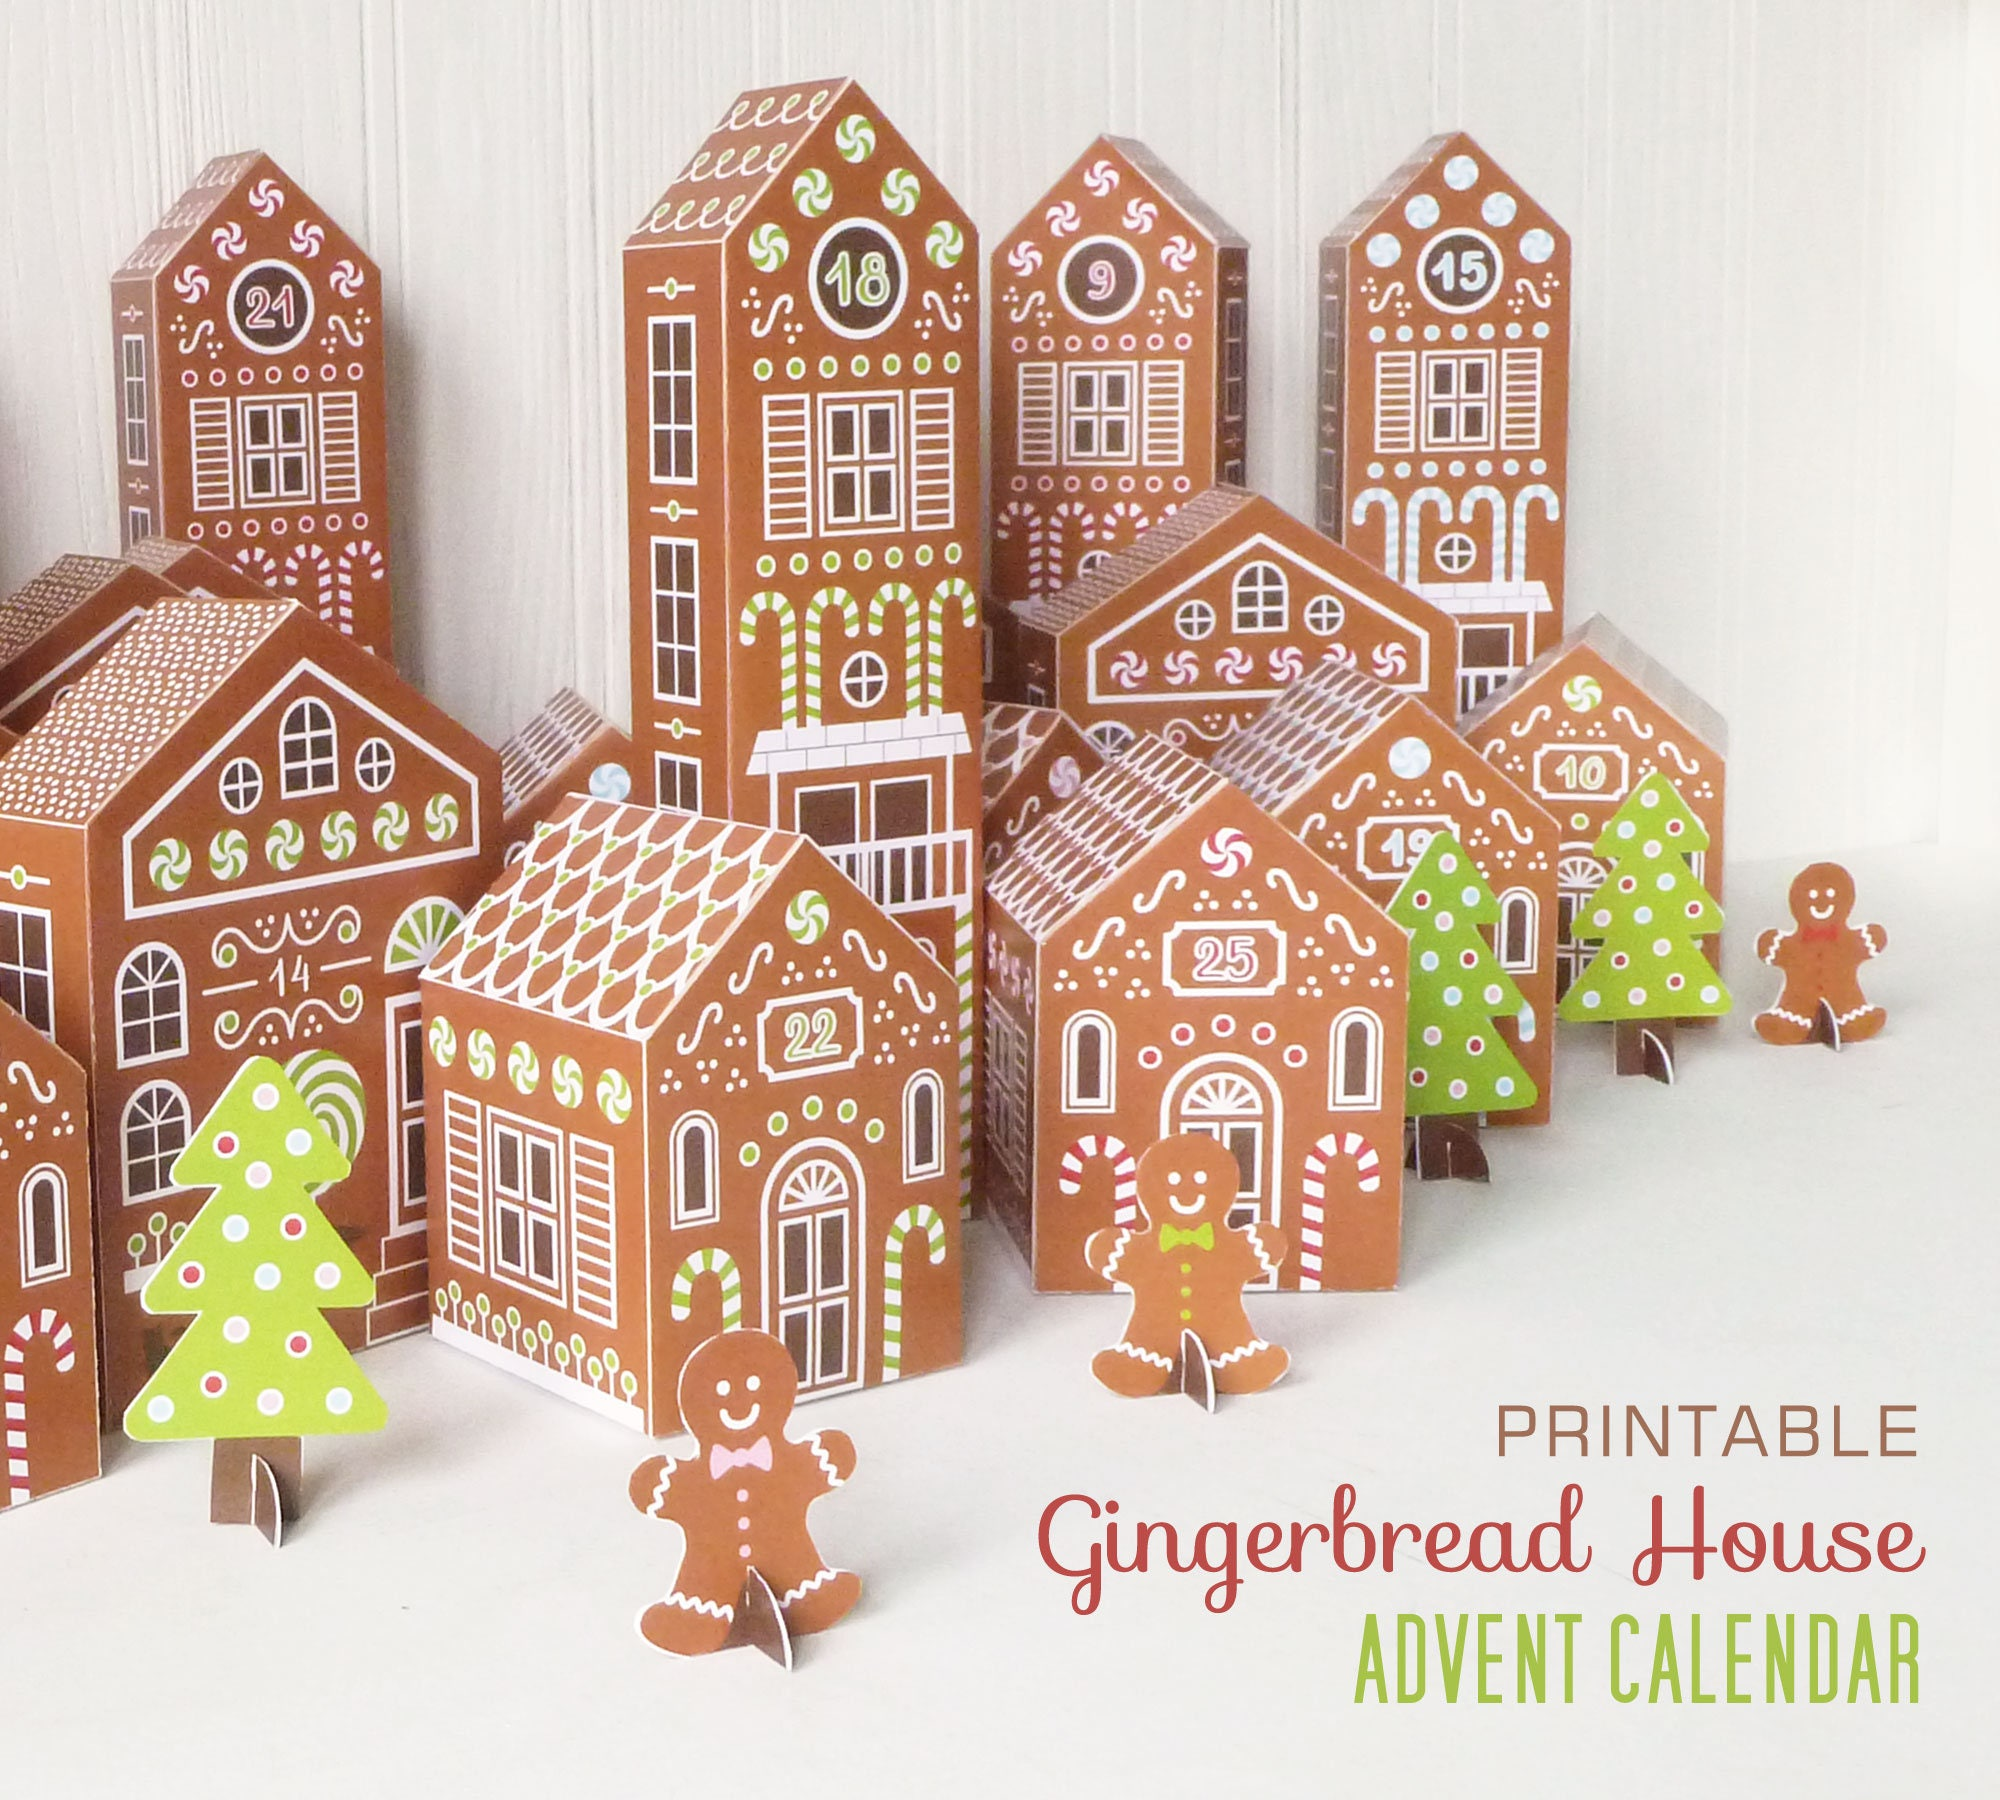 image about Gingerbread House Printable known as Printable Arrival Calendar, Gingerbread Residences, Do it yourself Paper Xmas Village